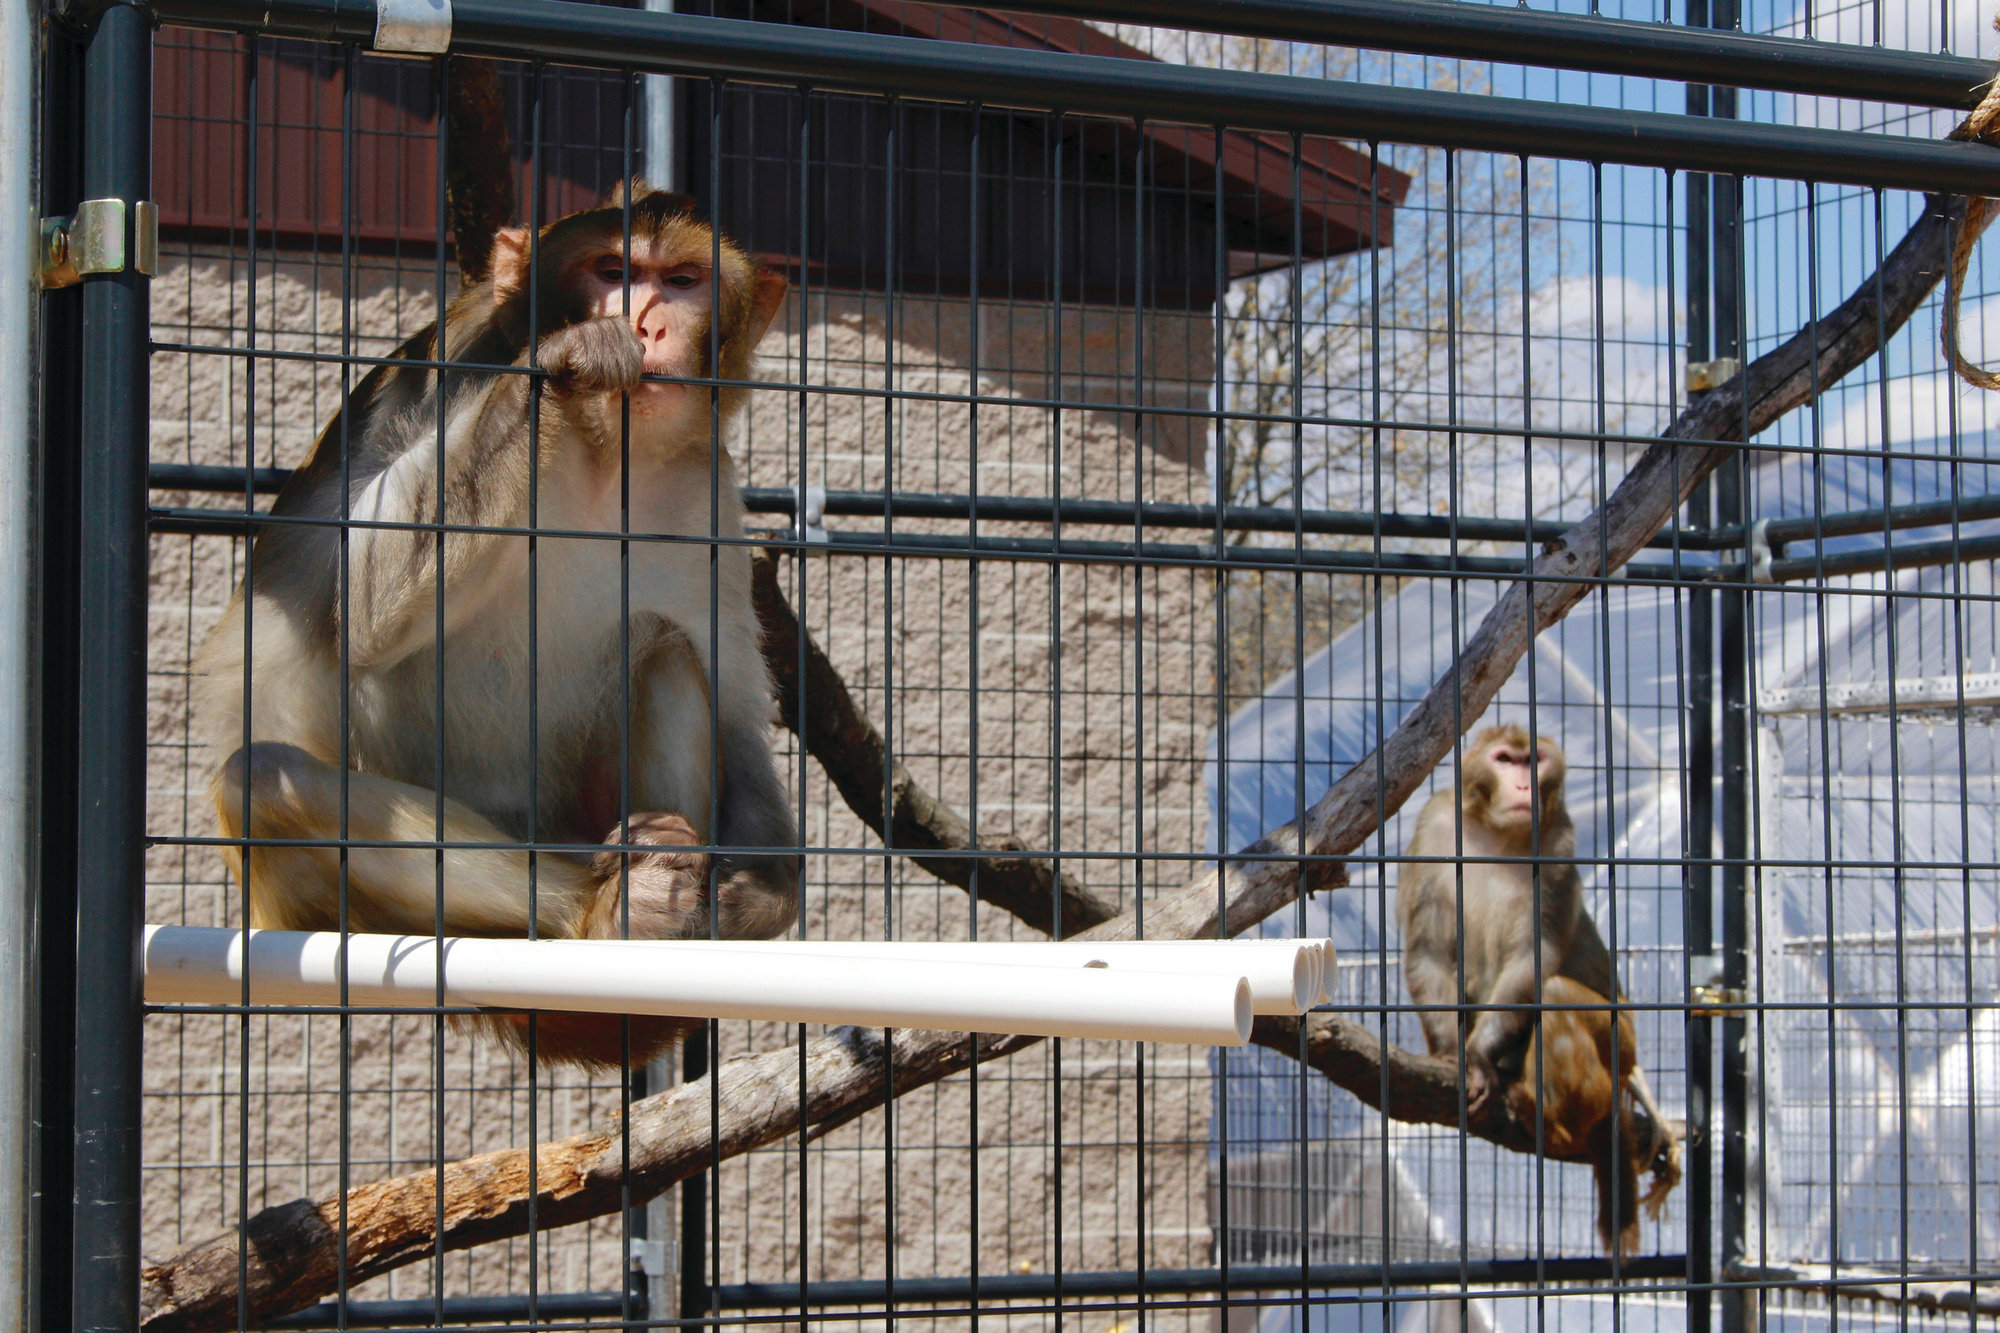 THE ASSOCIATED PRESS  River, left, and Timon, both rhesus macaques, sit in an outdoor enclosure at Primates Inc. in Westfield, Wisconsin. It's a sanctuary that so far has five rhesus macaque monkeys that were previously used in medical research and one vervet monkey that used to be a pet.